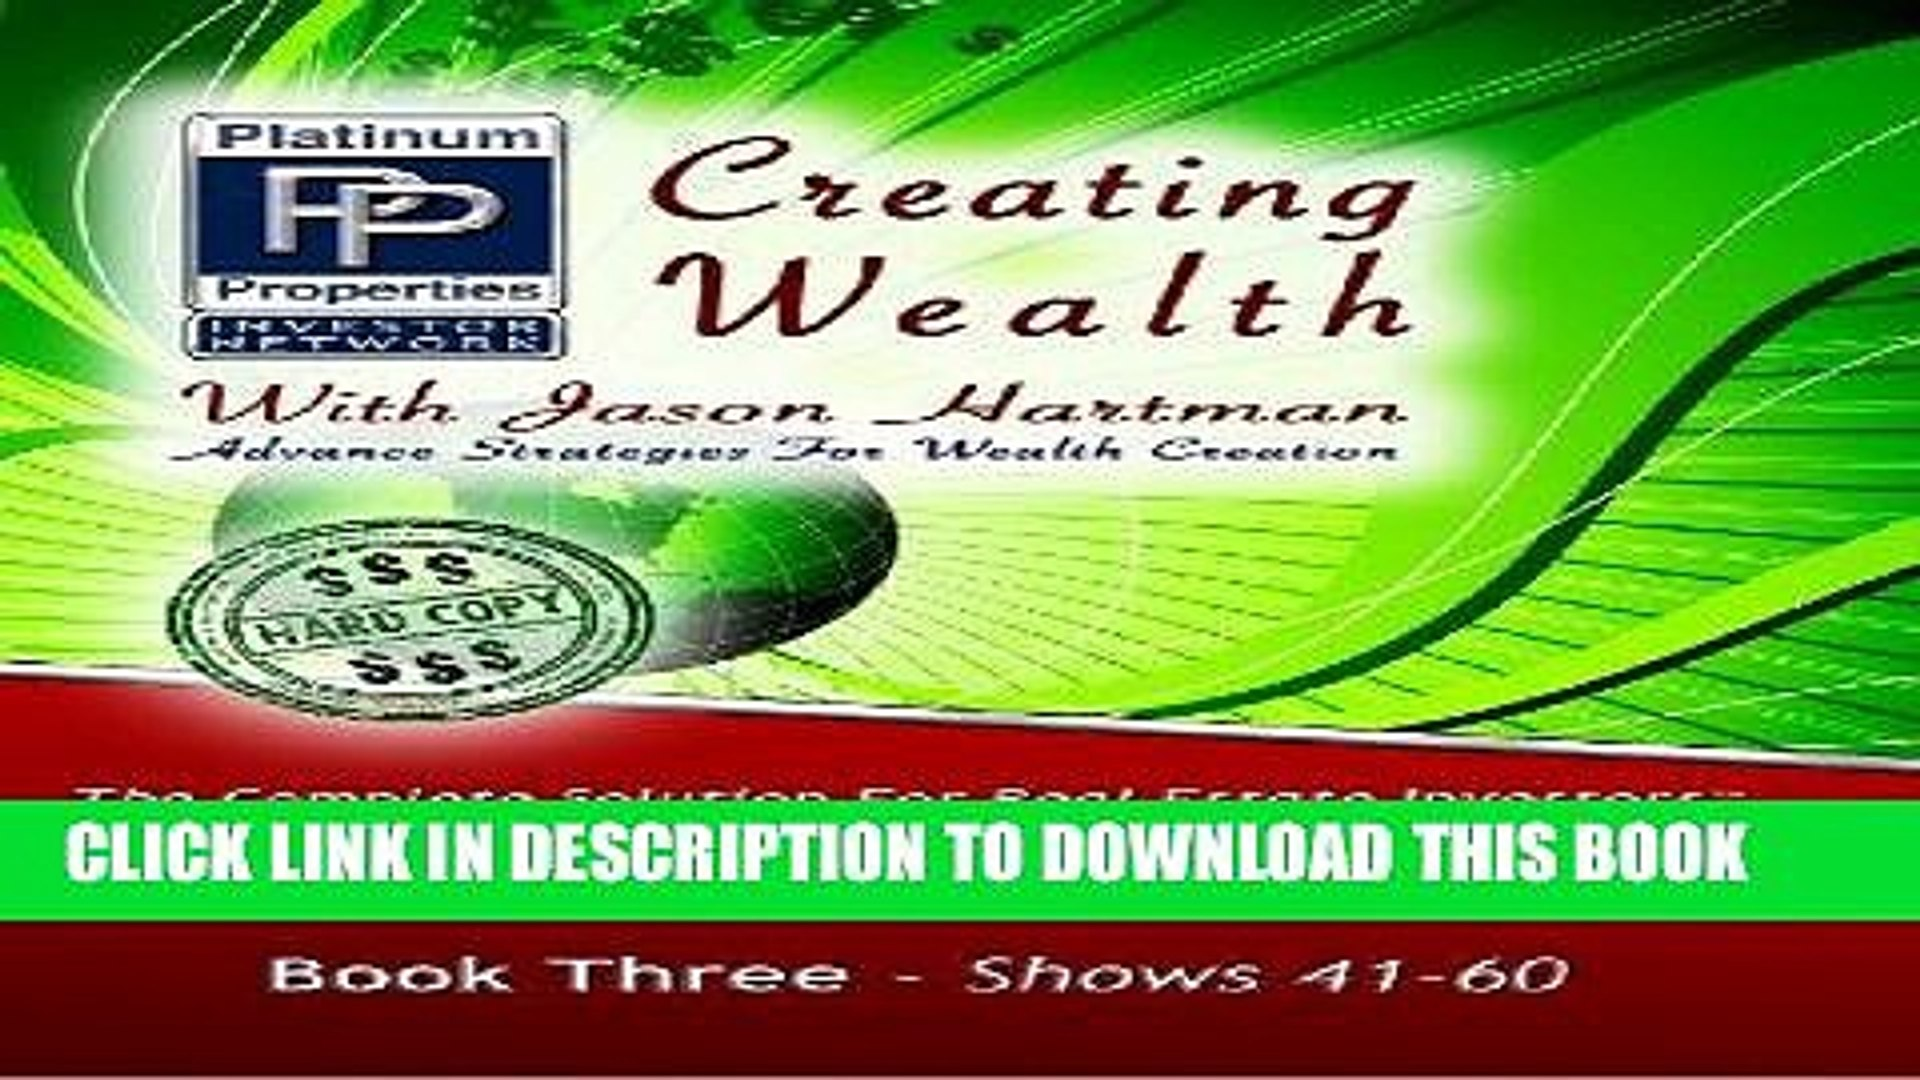 [New] Ebook Creating Wealth With Jason Hartman Book Three Shows 41 - 60 Free Online